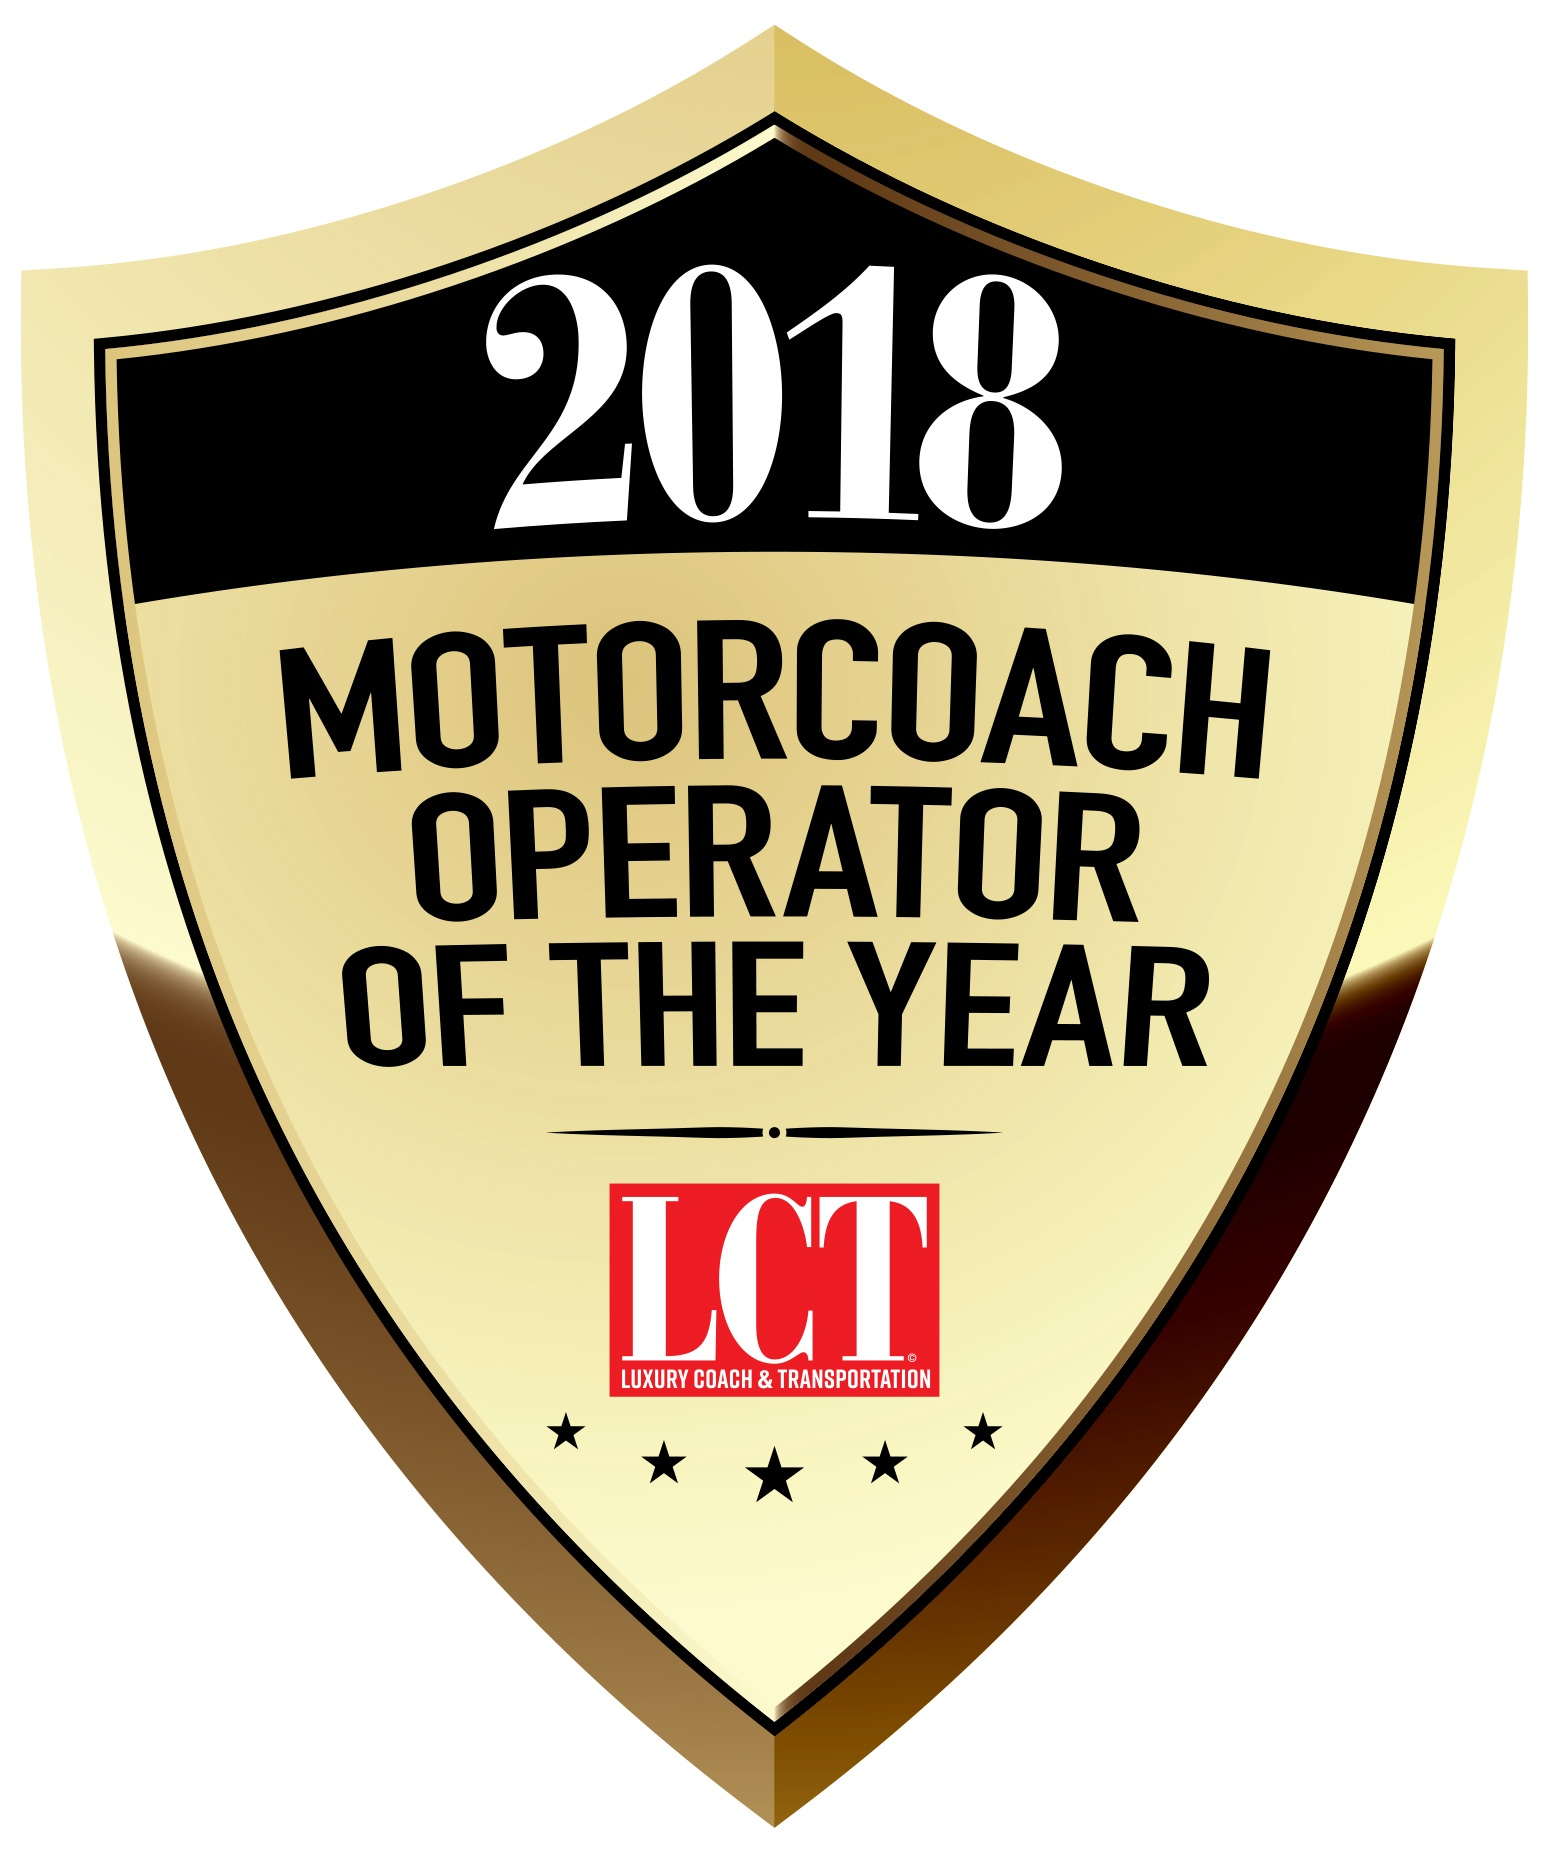 Escot Bus Lines Motorcoach Operator of the YEar